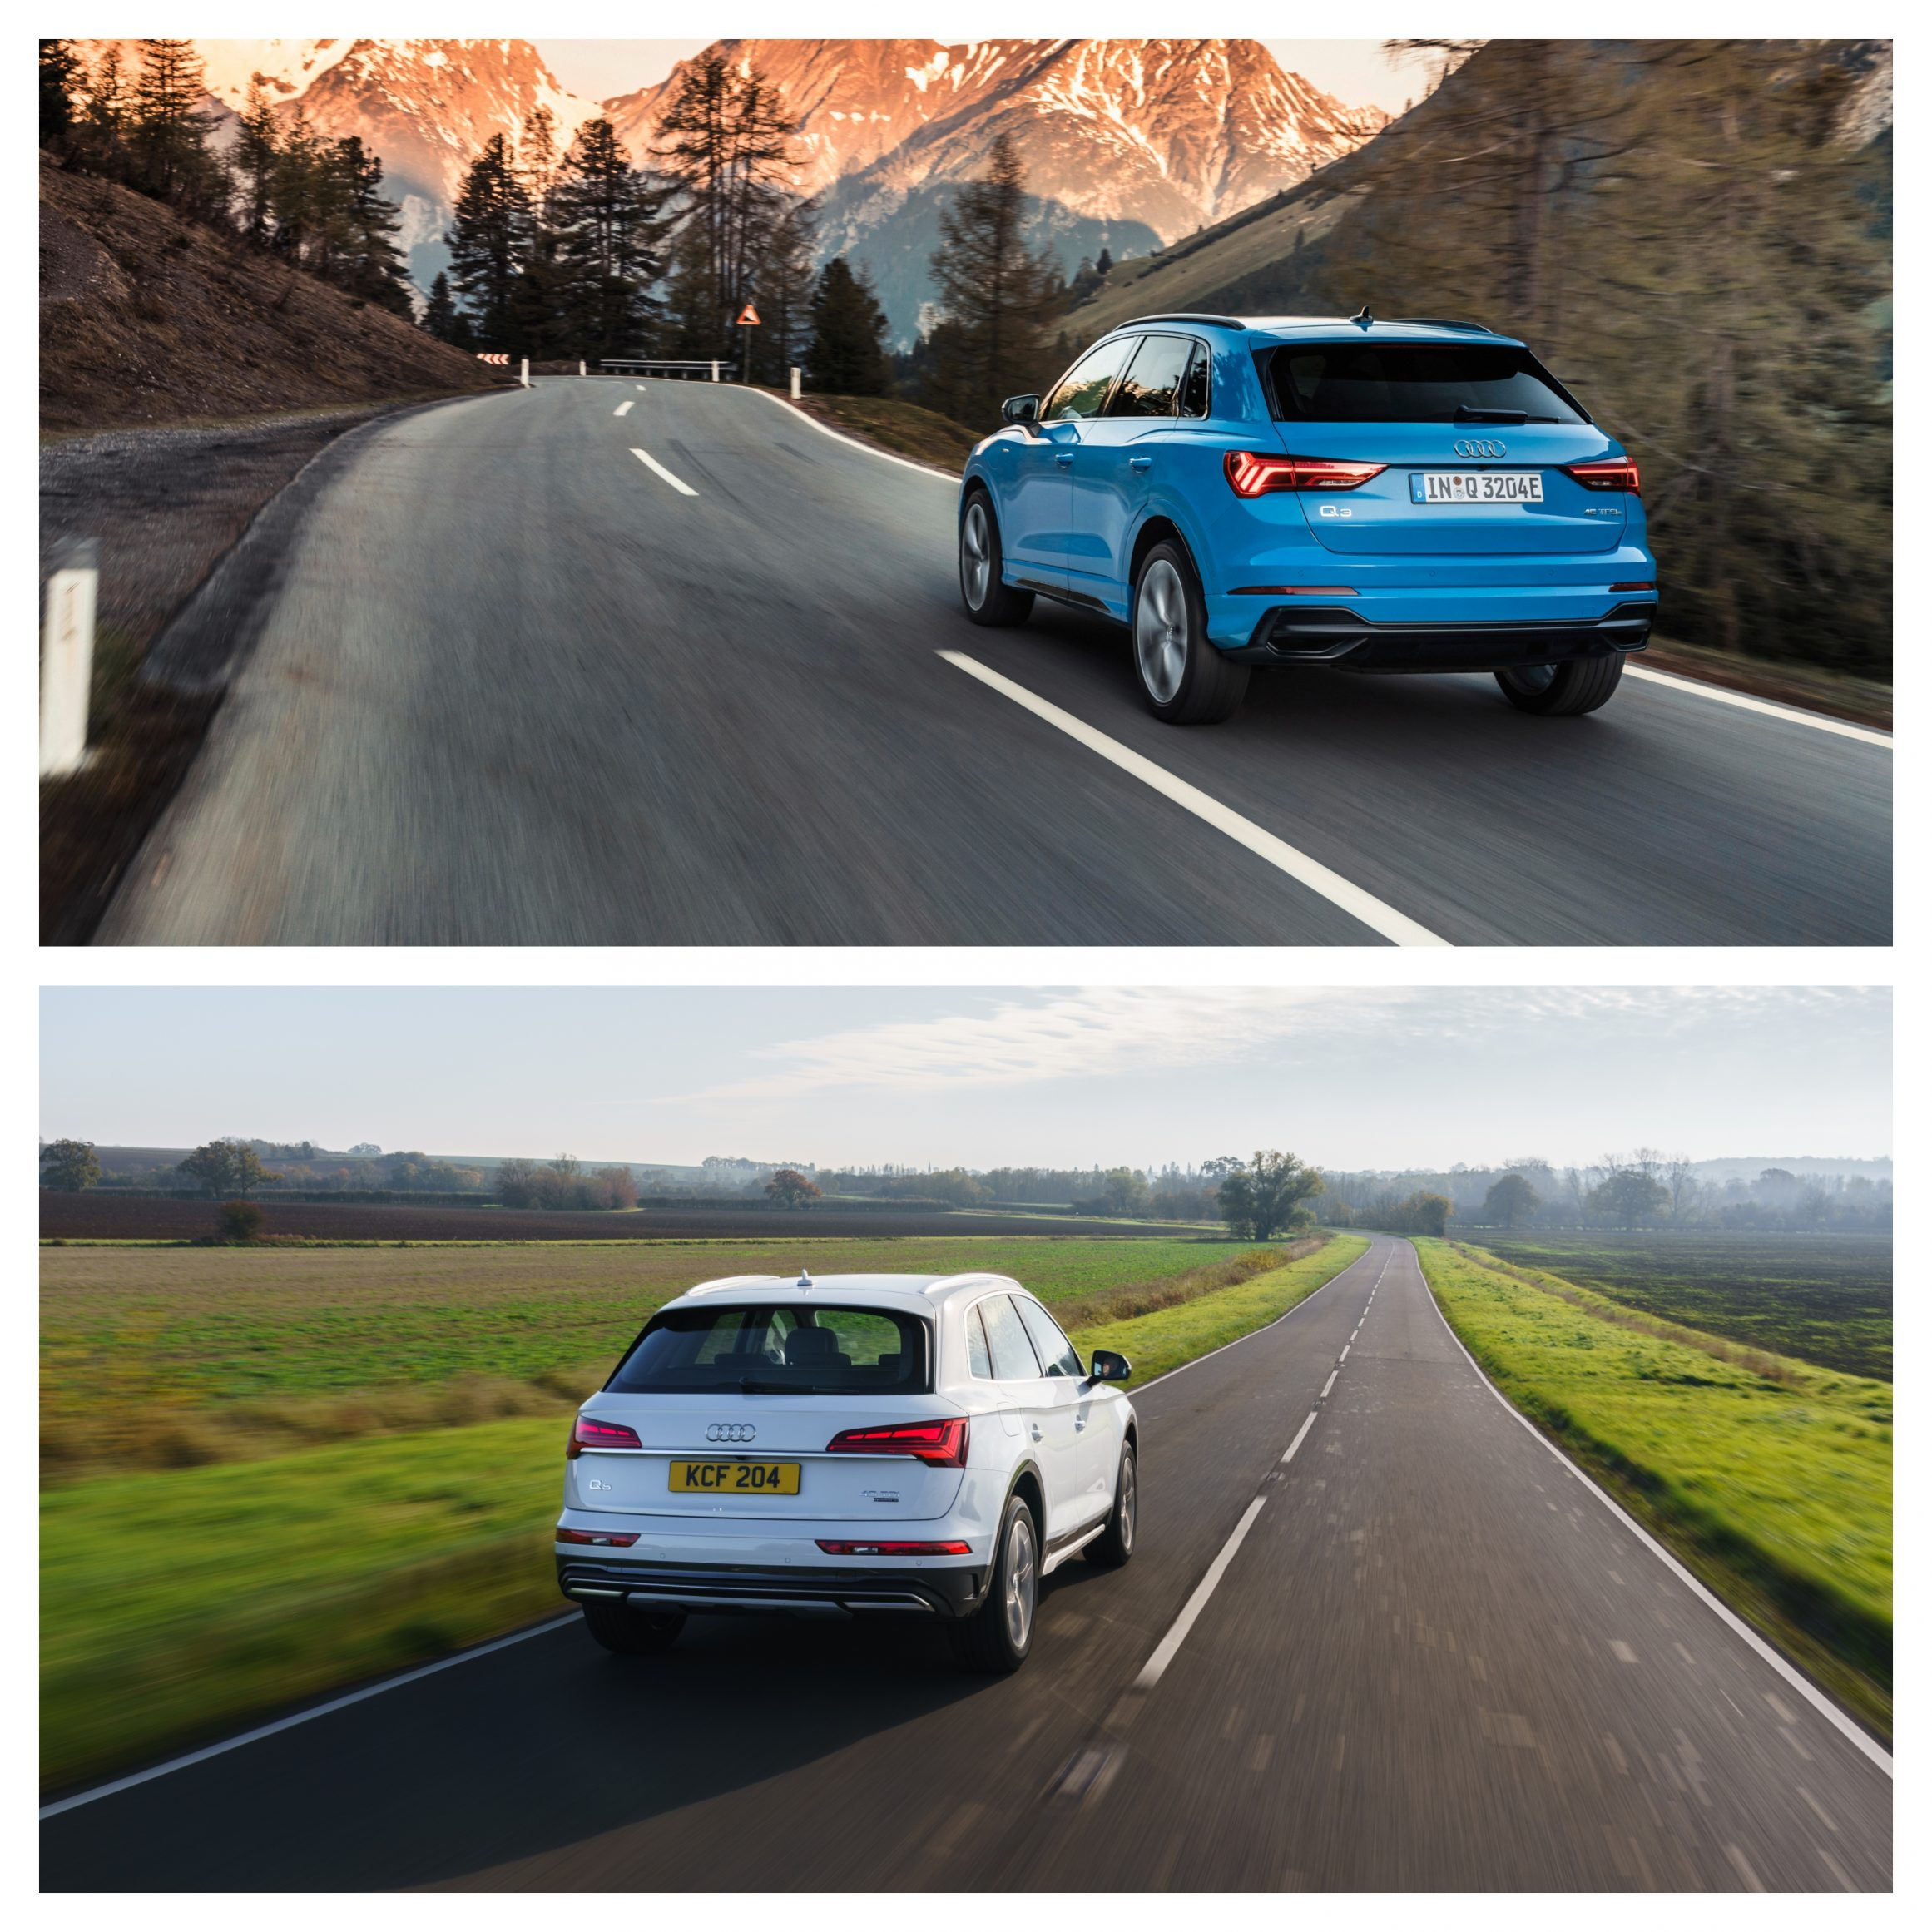 Audii Q3 Vs Q5 - on the road performance and price